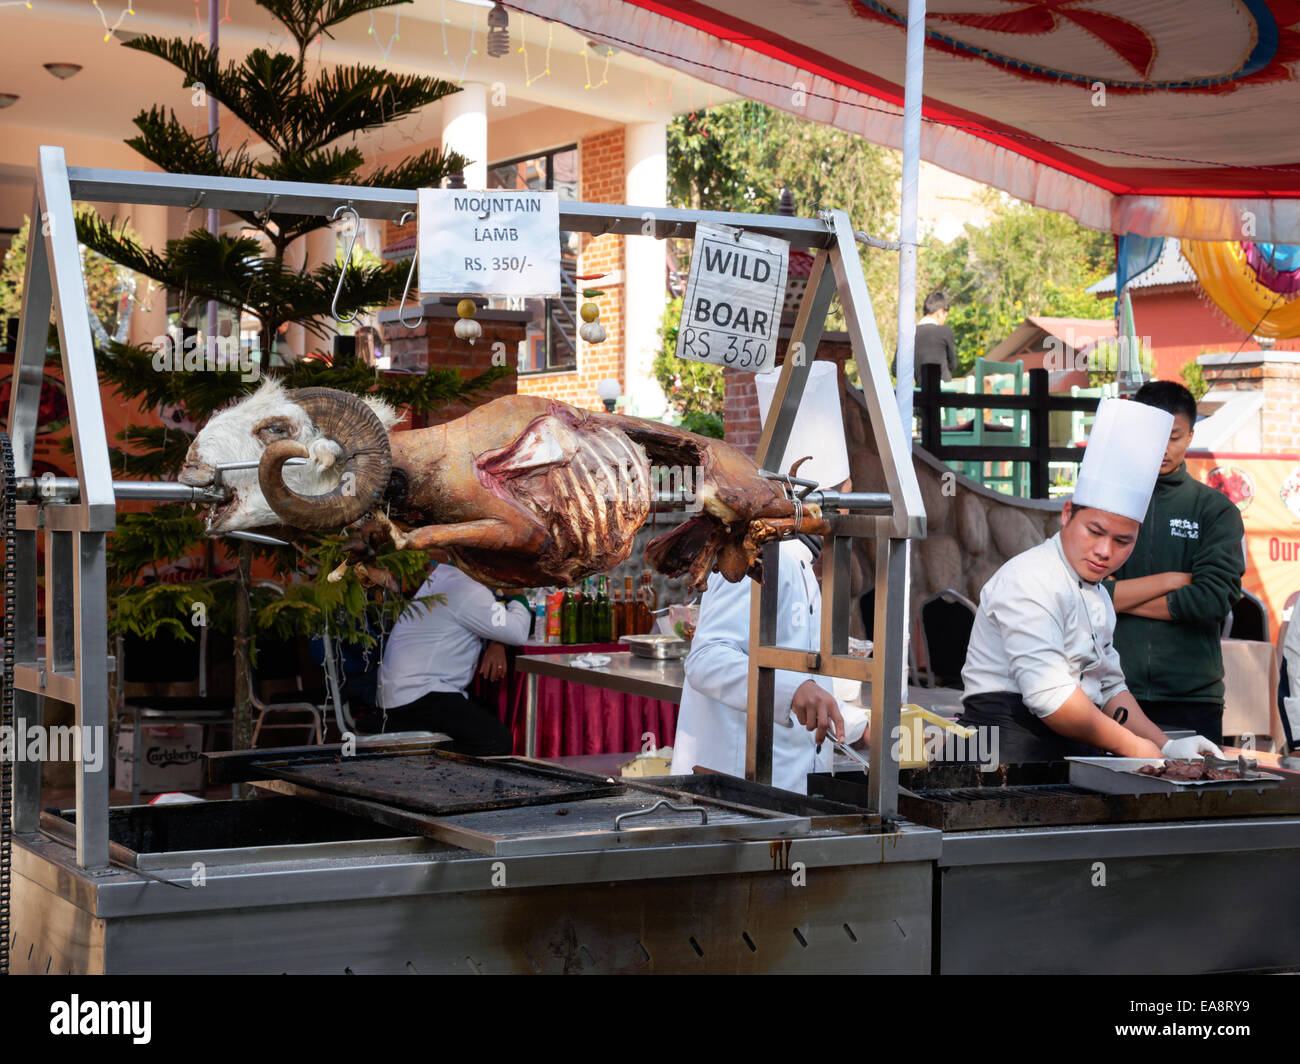 A mountain sheep roasting at the Pokhara Street Festival, Nepal - Stock Image